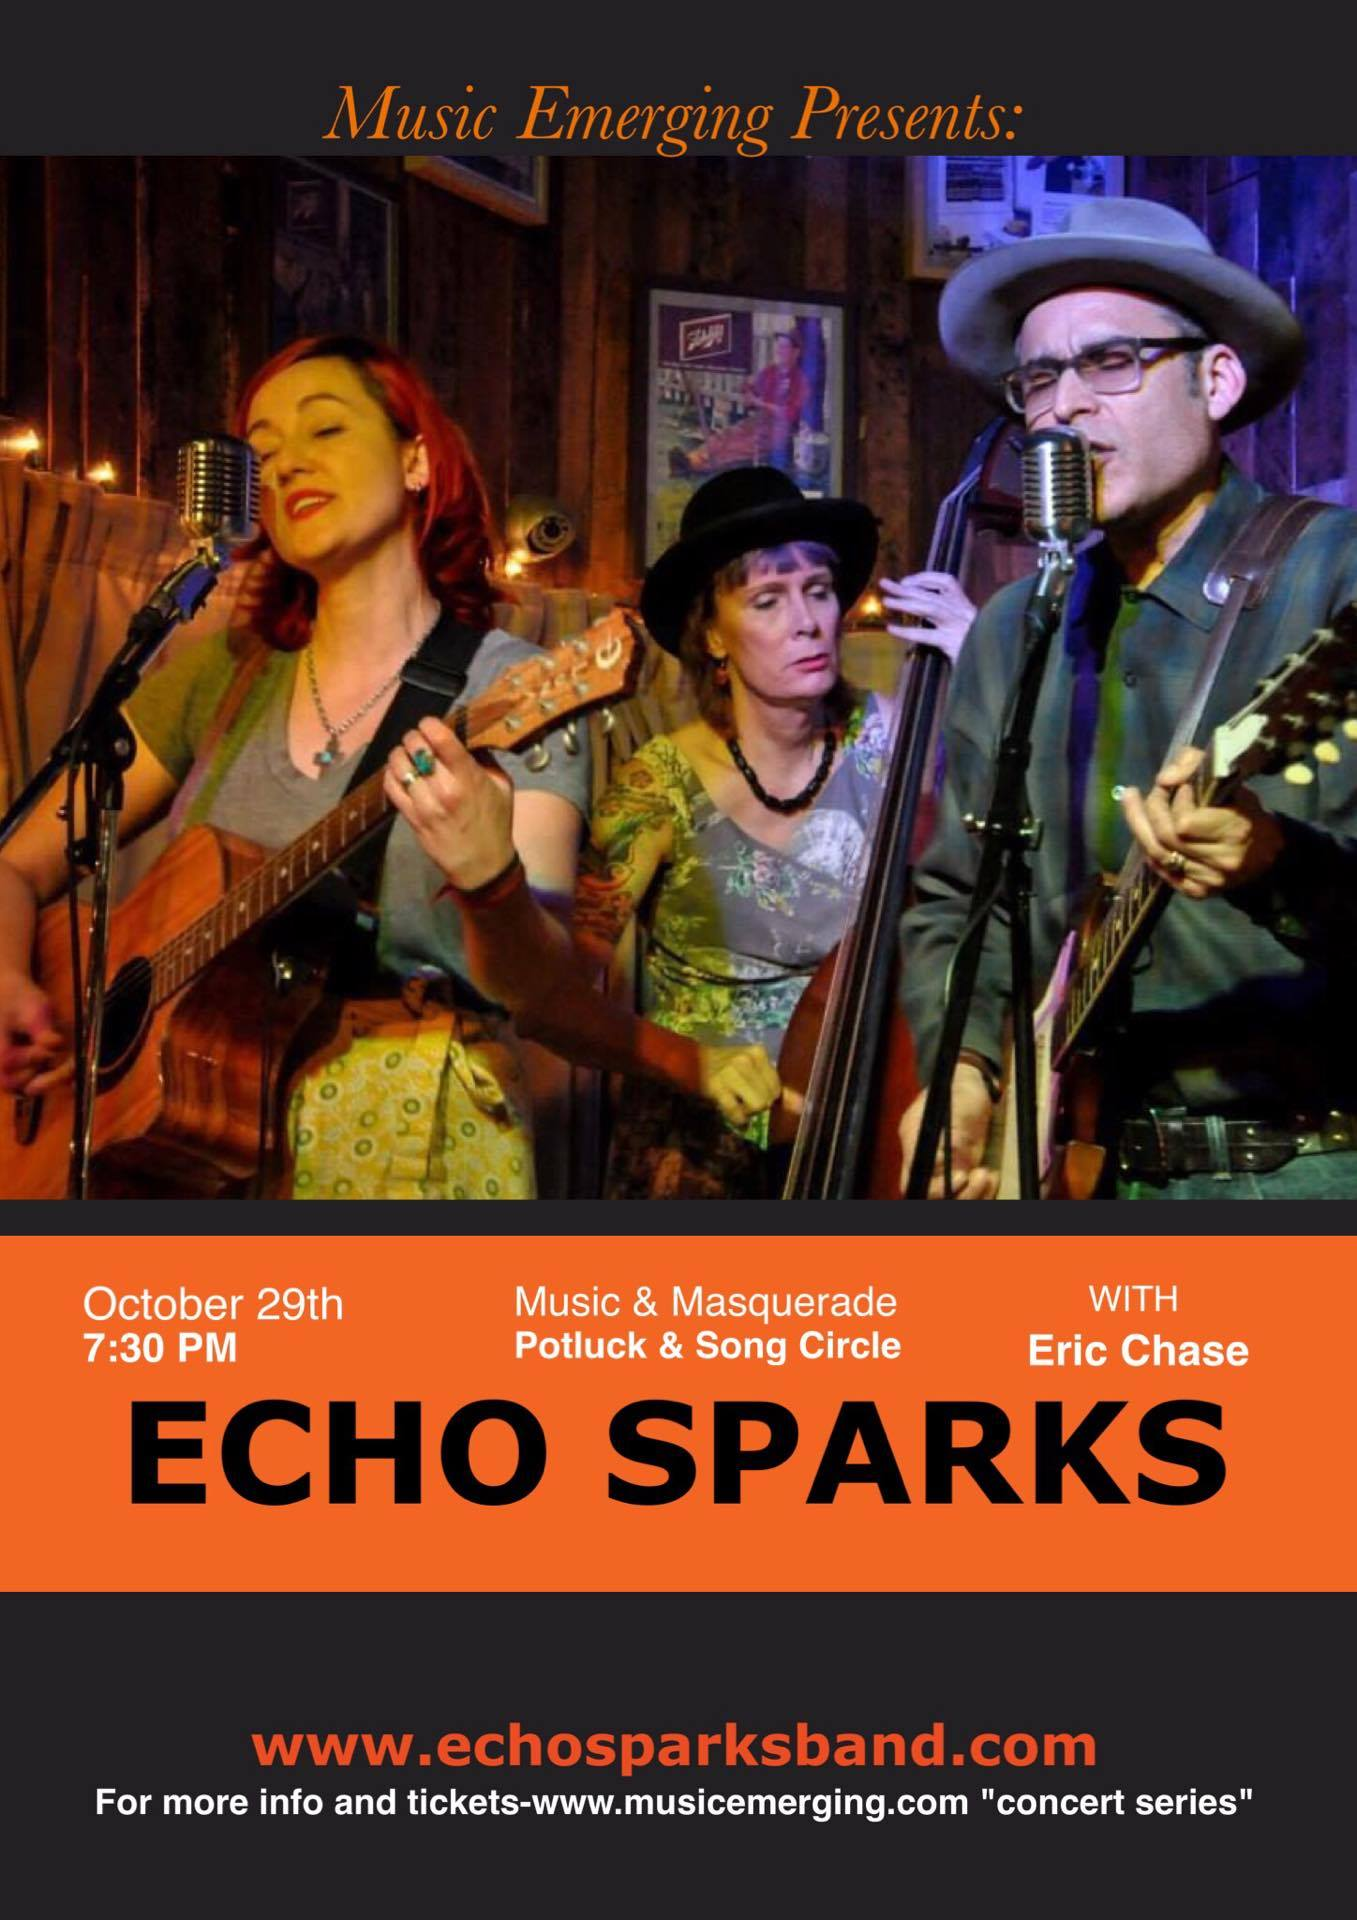 """Music Emerging  presents the """"Mexifolkabilly"""" of Echo Sparks-Join us for a fun potluck and masquerade house concert in Atwater Village Los Angeles, with special guest----singer songwriter Eric Chase. Concert will be BYOB and a dish; some food will be provided, but bringsomething to share if you can. Masquerade party-so wear a cool mask-preferably a half mask so we can see your beautiful face (no Trump masks please) Some masks will be available if you want one....Concert will take place at the residence of artist  Robert Soffian . Song circle will follow if you would like to bring an instrument. Once you purchase your ticket, within 24 hours you will be emailed the address. Street parking is around residence with the most street parking on Tyburn Street. Any questions; email: musicemerging@gmail.com and you can visit our website at :www.musicemerging,com """"concert series""""  Ticket link:  MUSIC EMERGING PRESENTS: ECHO SPARKS WITH SPECIAL GUEST ERIC CHASE     More about the artists:   ECHO SPARKS   """"Echo Sparks is an Americana band from Orange County, California. They are inspired by the quiet back roads of California's farmlands and desolate corners, which they translate into harmonies that break hearts and tunes that move feet. They perform frequently to the delight of audiences around Southern California and beyond. Their latest album release, """"Ghost Town Girl"""" has had  radio play  across North America and has garnered  rave reviews  (including two write-ups in No Depression).  Echo Sparks is led by primary songwriter DA Valdez on vocals and lead guitar. Colleen Kinnick shares the lead vocal position and plays rhythm guitar. Cindy Ballreich provides support on upright bass and mandolin. The trio's wide range of influences allows them to put a refreshing perspective on roots music that is enjoyed by music fans everywhere.""""   ERIC CHASE   By the middle of high school Eric was playing bass for a local band called the  Gross National Product . It was this band that gave h"""